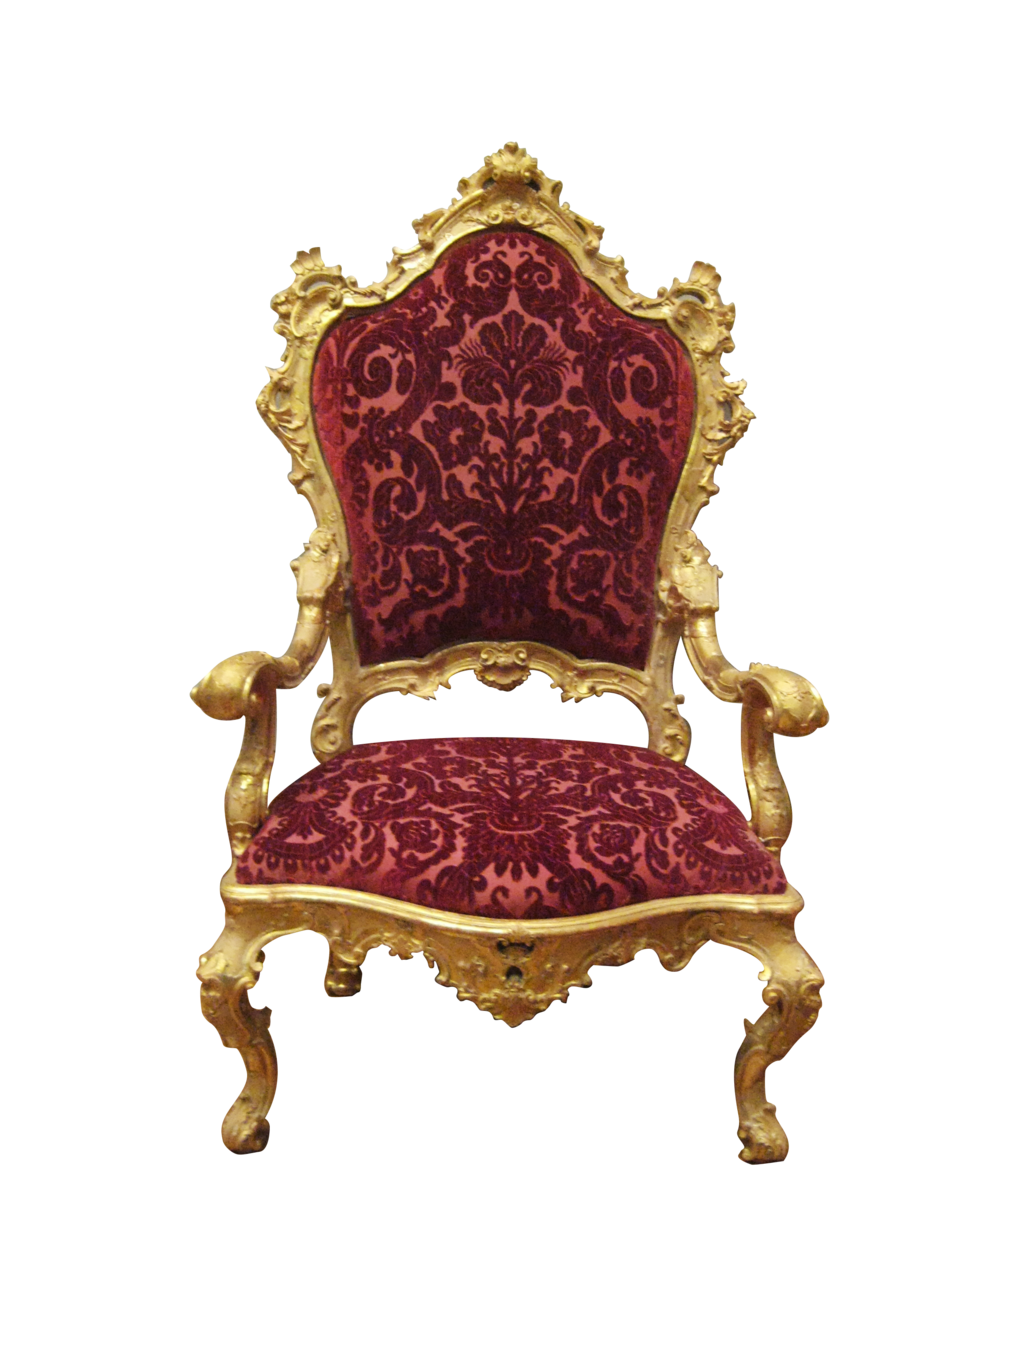 Png Royal Chair By Duhbatista Deviantart Com On Deviantart Bamboo Chair Makeover Reupholster Chair Grey Leather Dining Chair